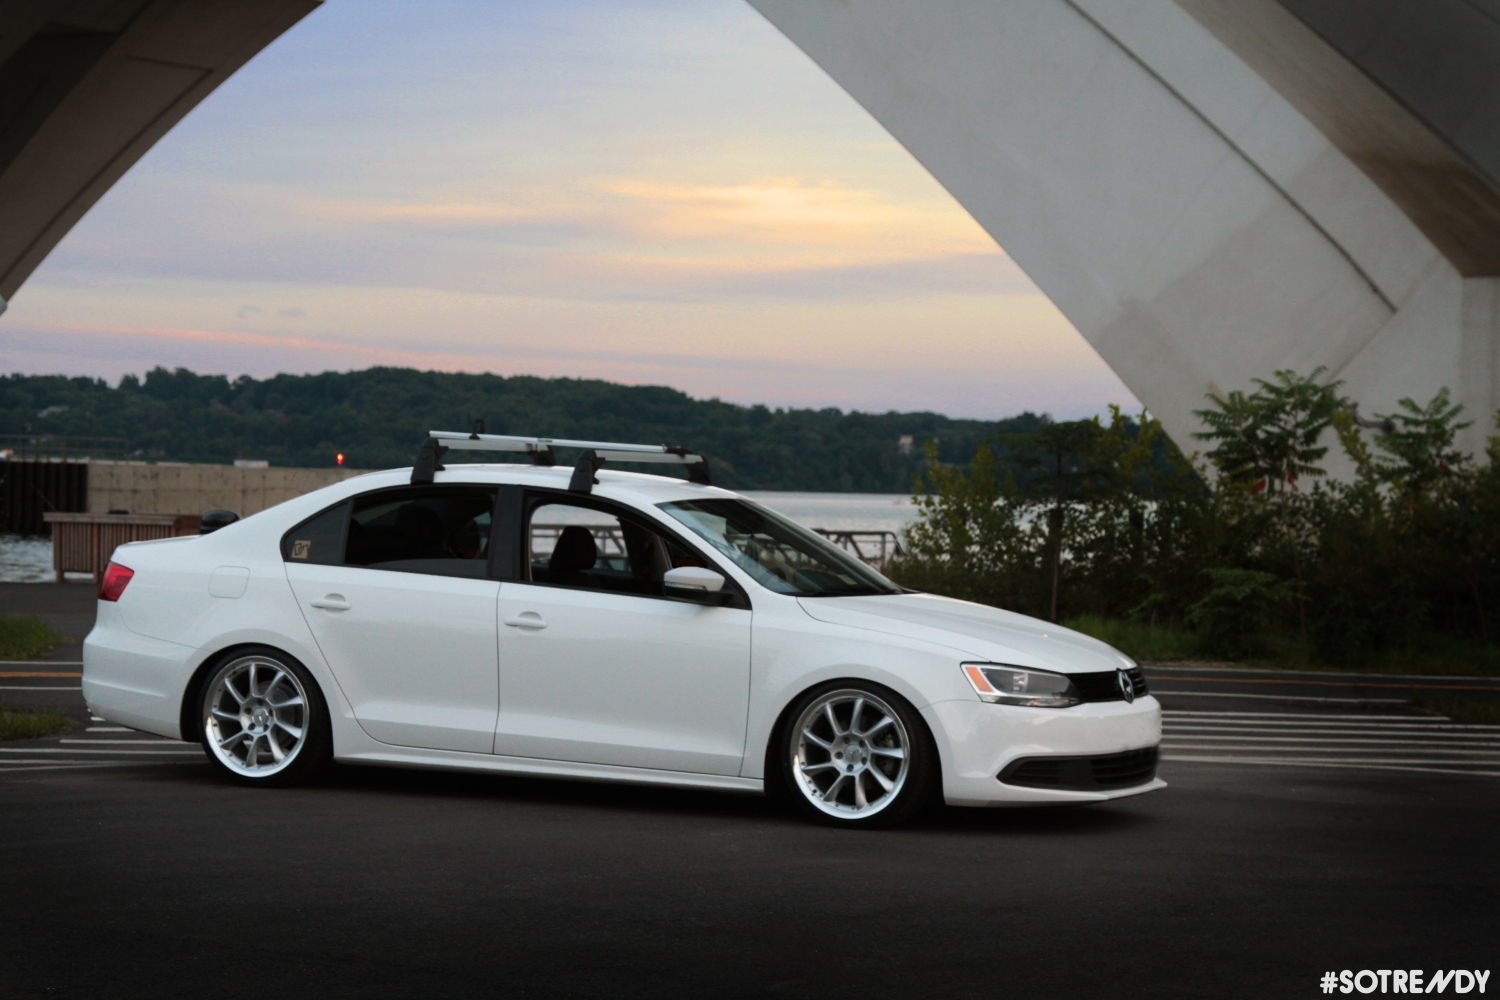 Jetta Bridge Edit 2 #st